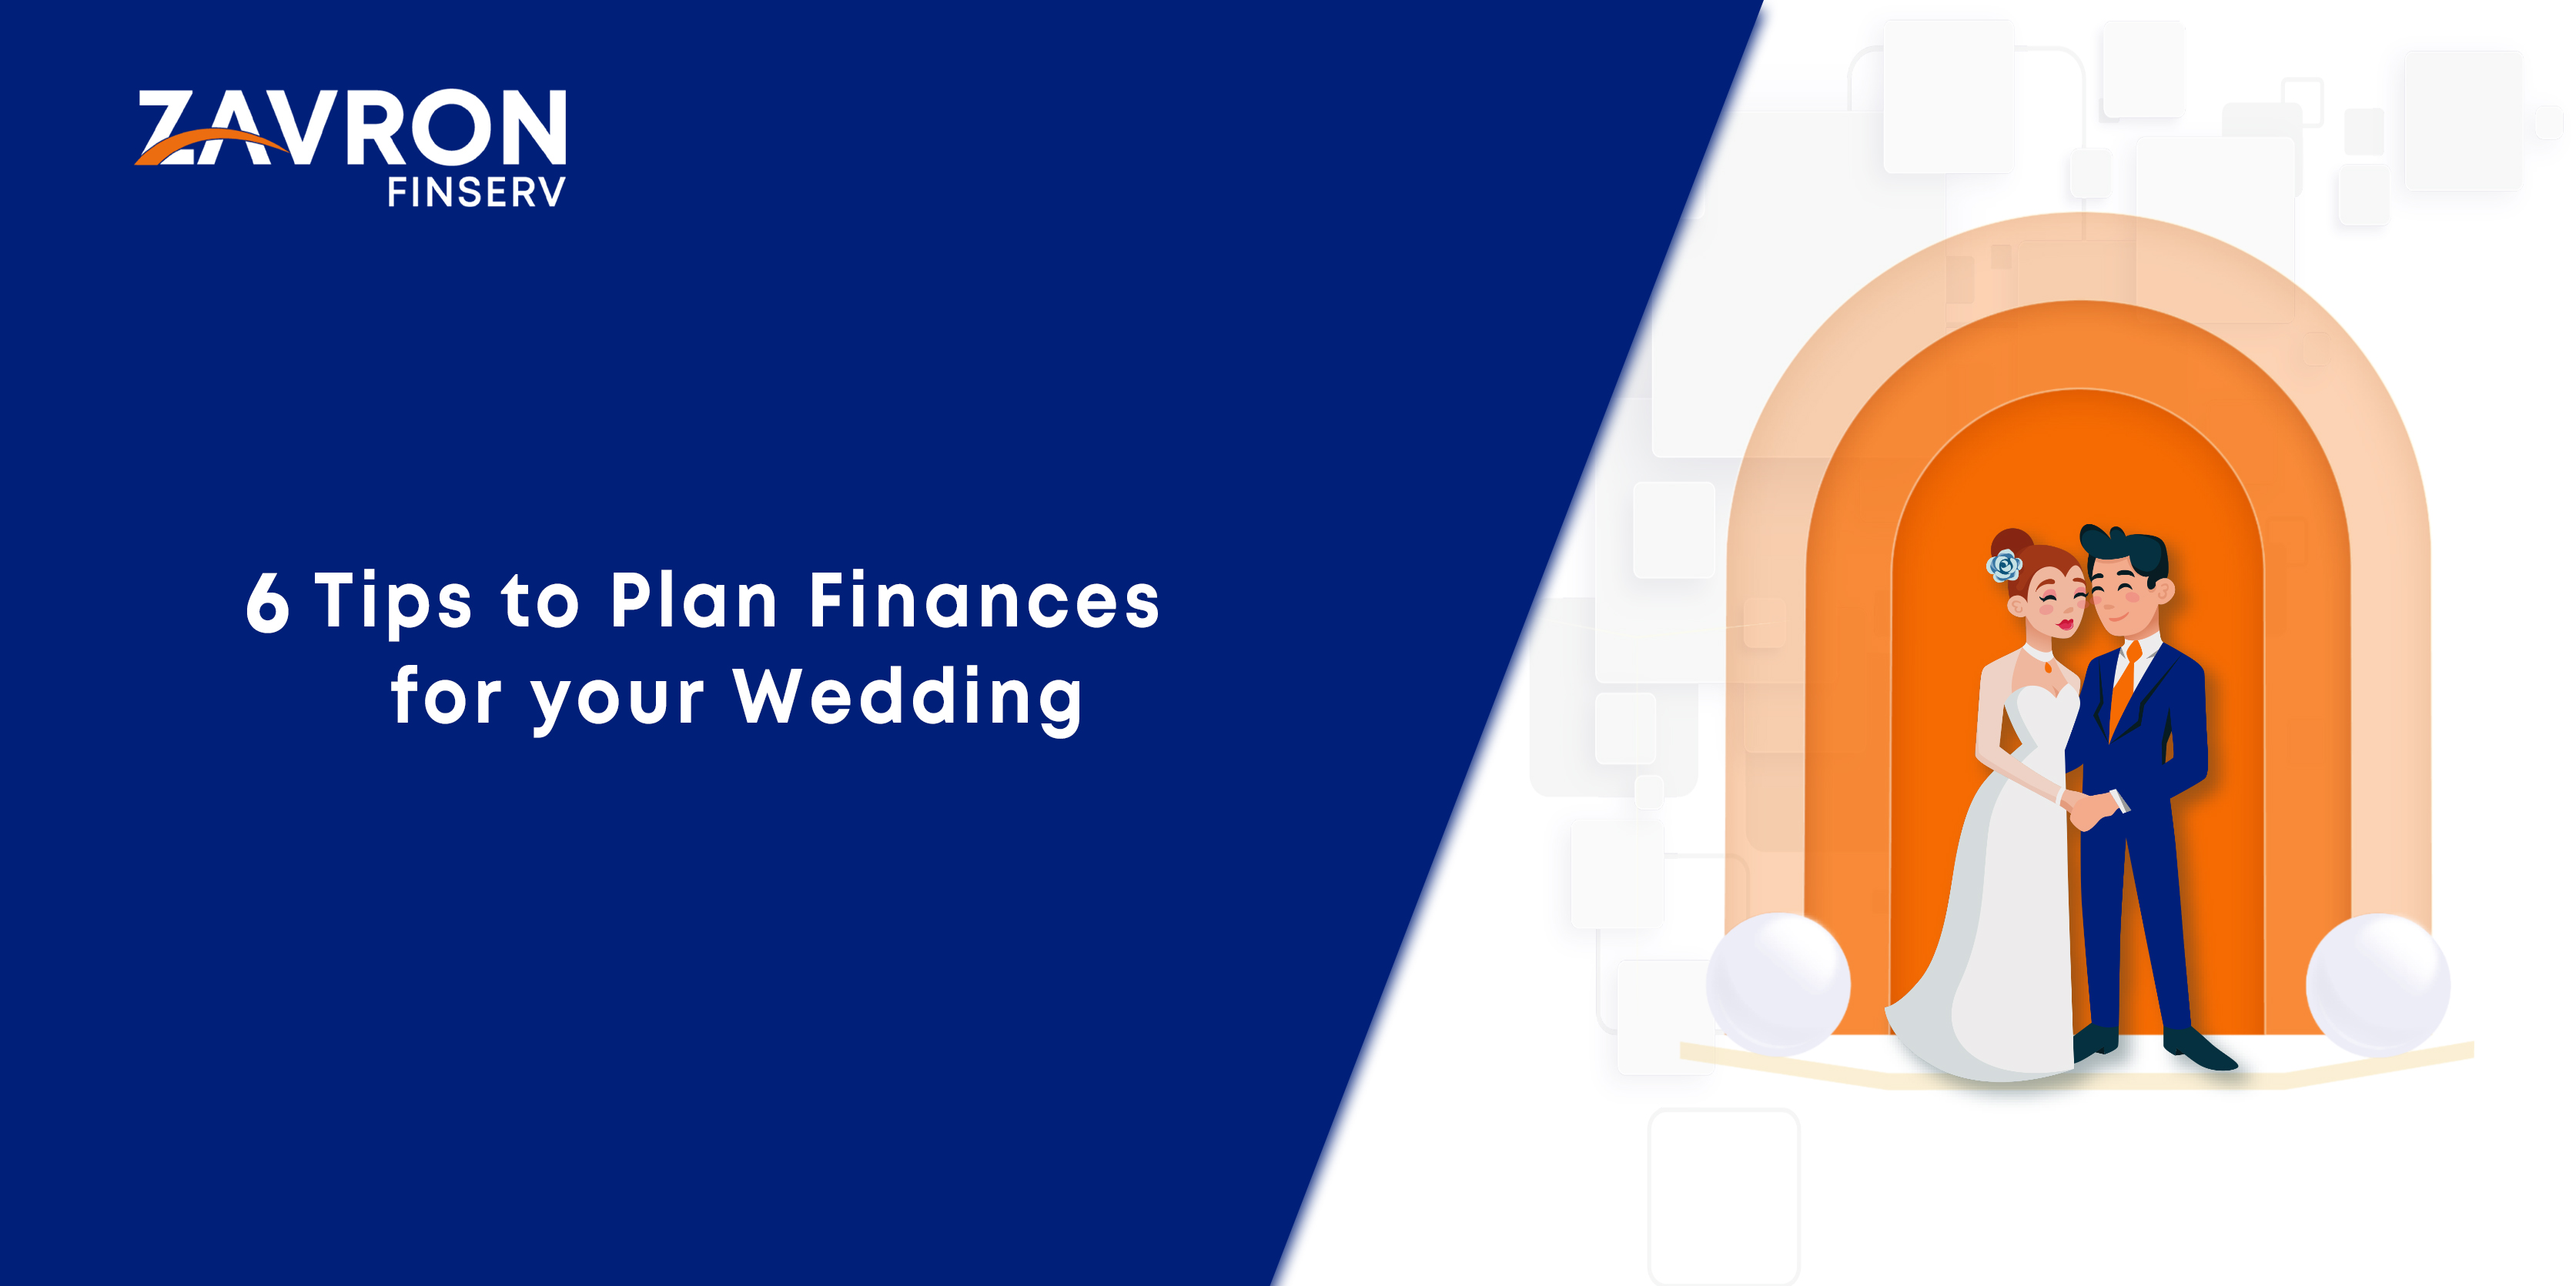 6 Tips to Plan Finances for your Wedding